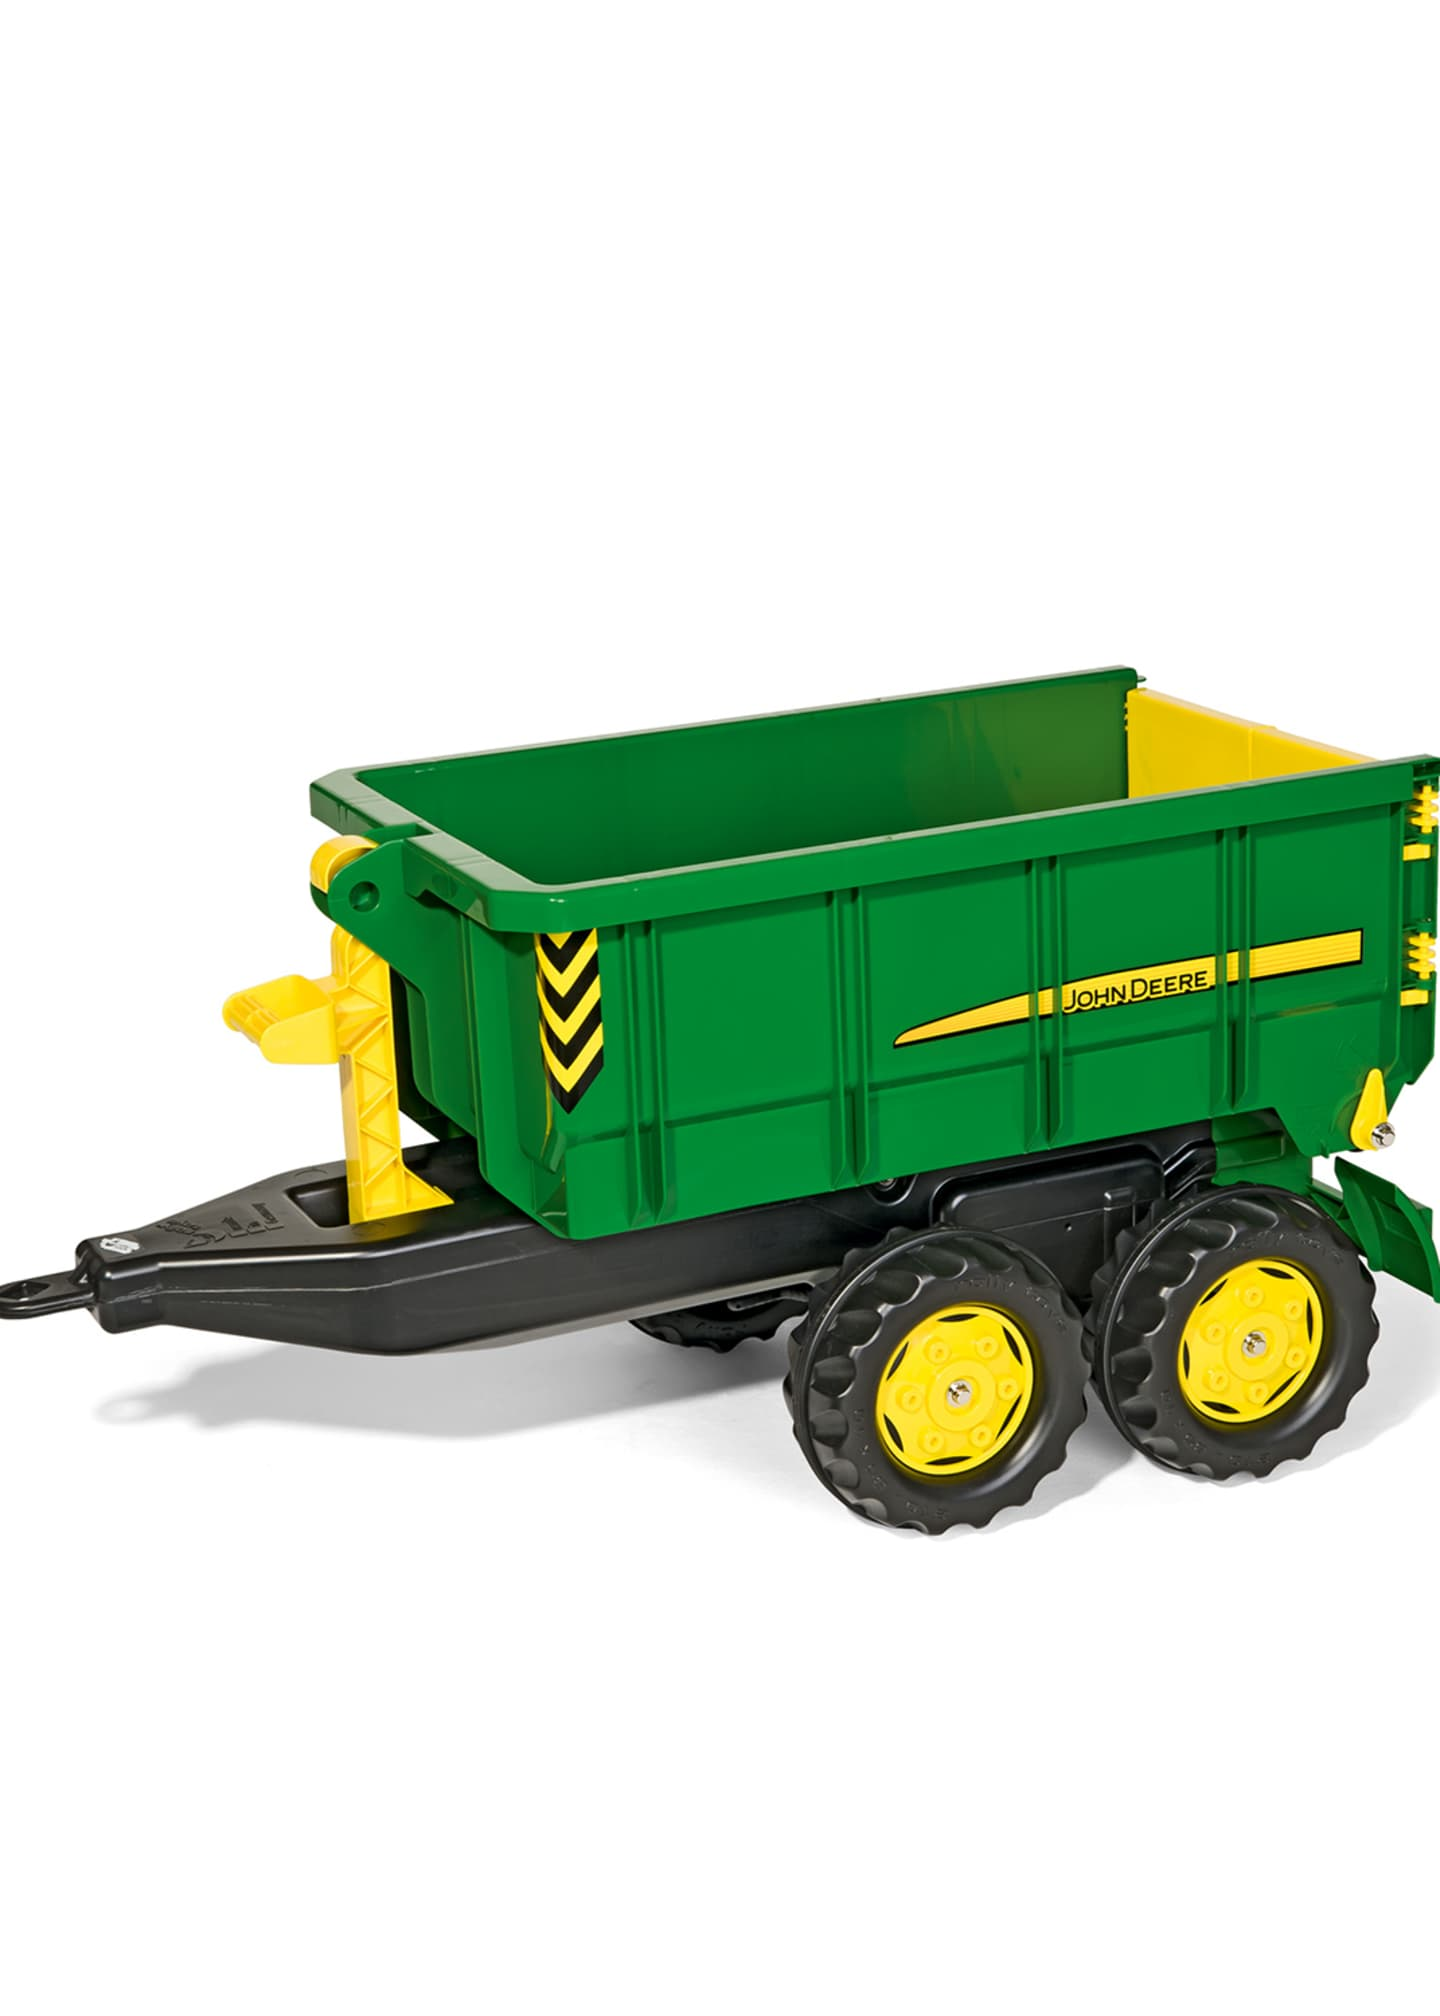 Image 1 of 1: John Deere Container Trailer Toy